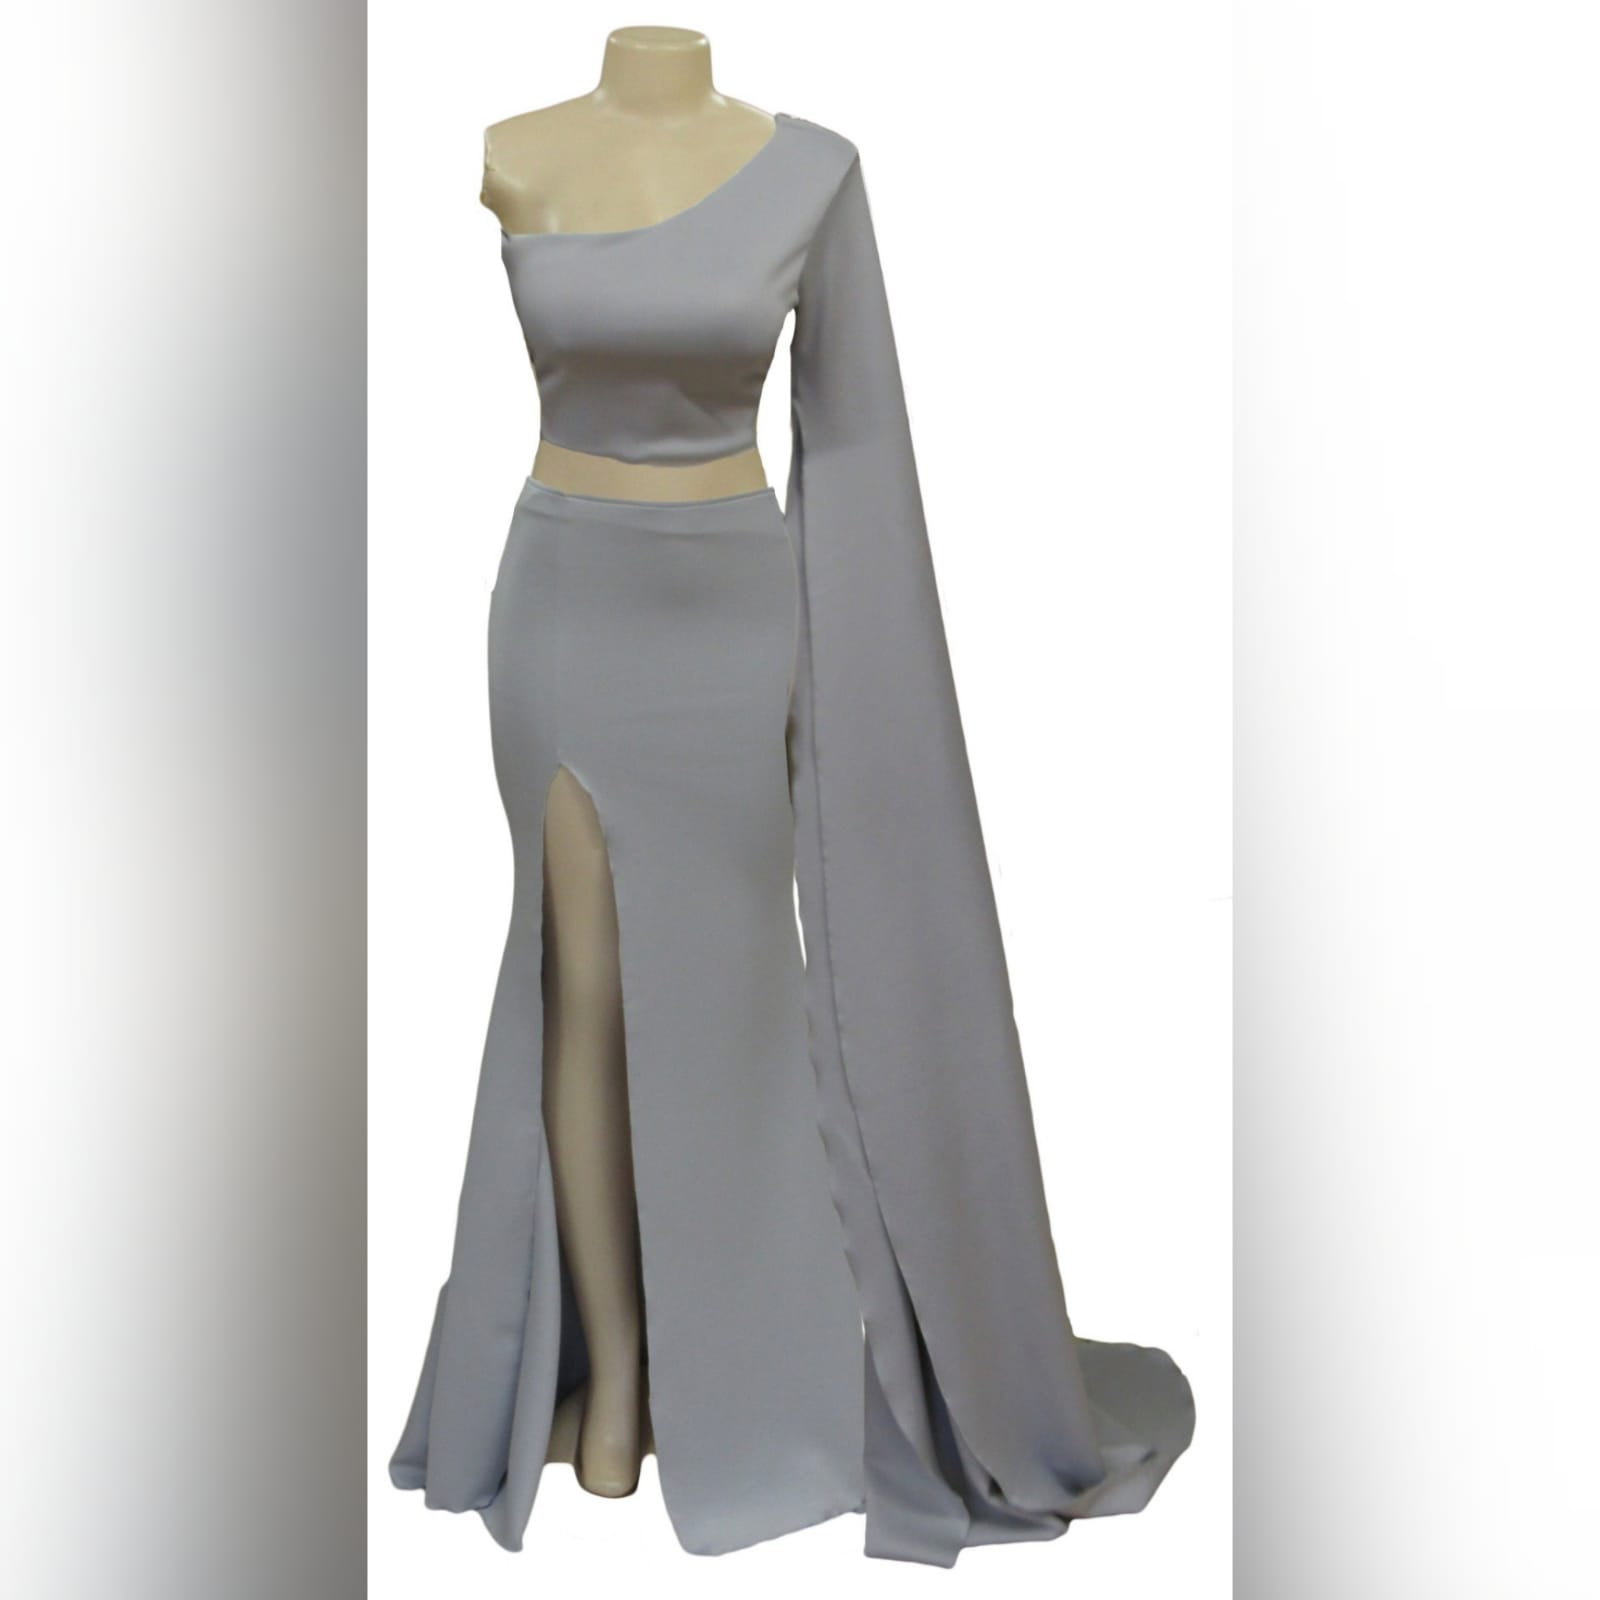 2 piece light grey prom dress 2 2 piece light grey prom dress, crop top with a single shoulder and a long wide sleeve creating a train. With a fitted long skirt, with a high slit.